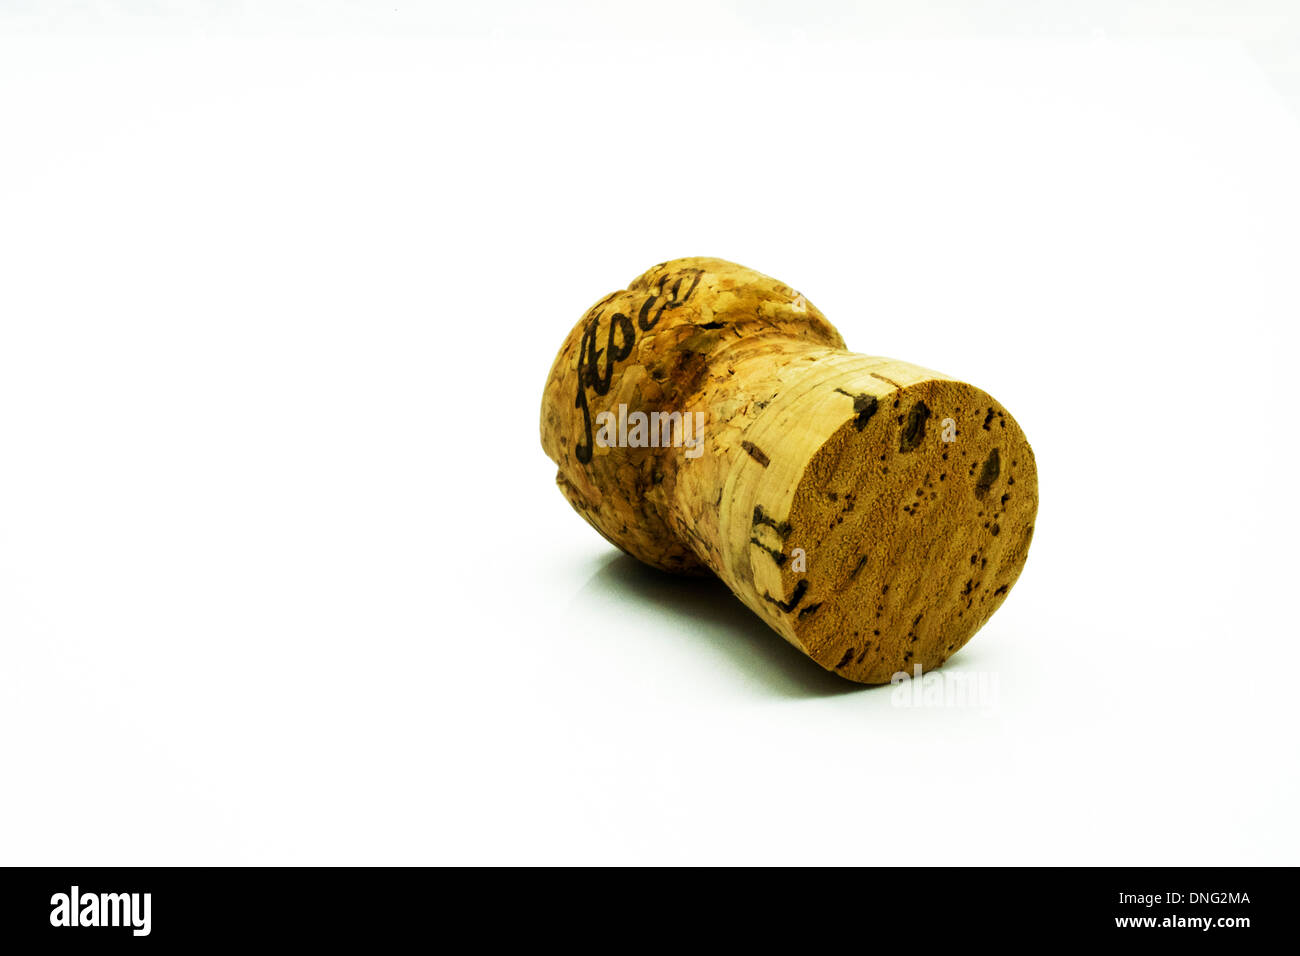 Asti spumante champagne cork single item cut out white background copy space - Stock Image